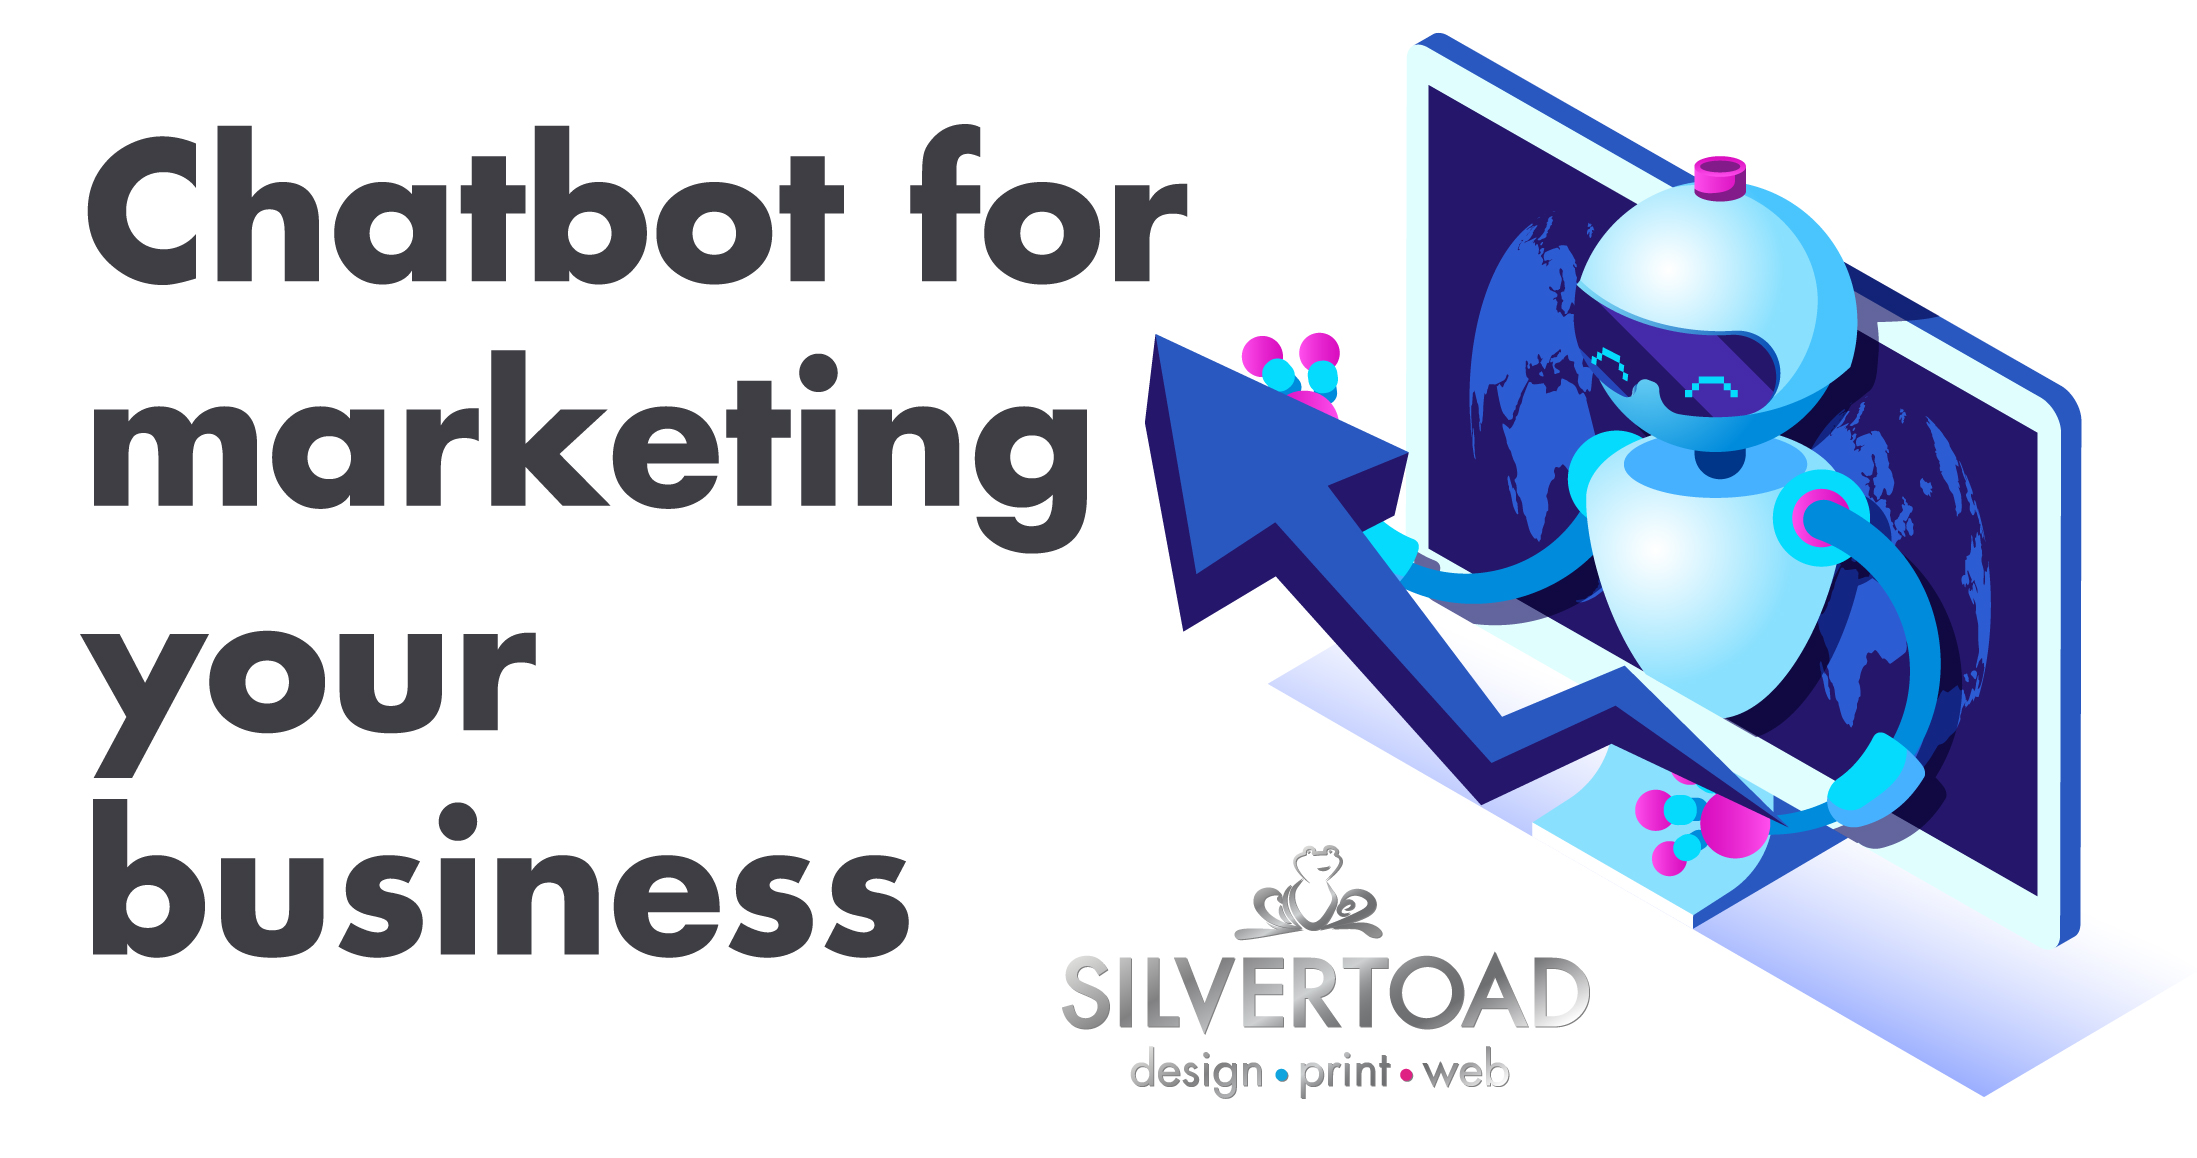 Chatbot-for-marketing-your-business-Blog